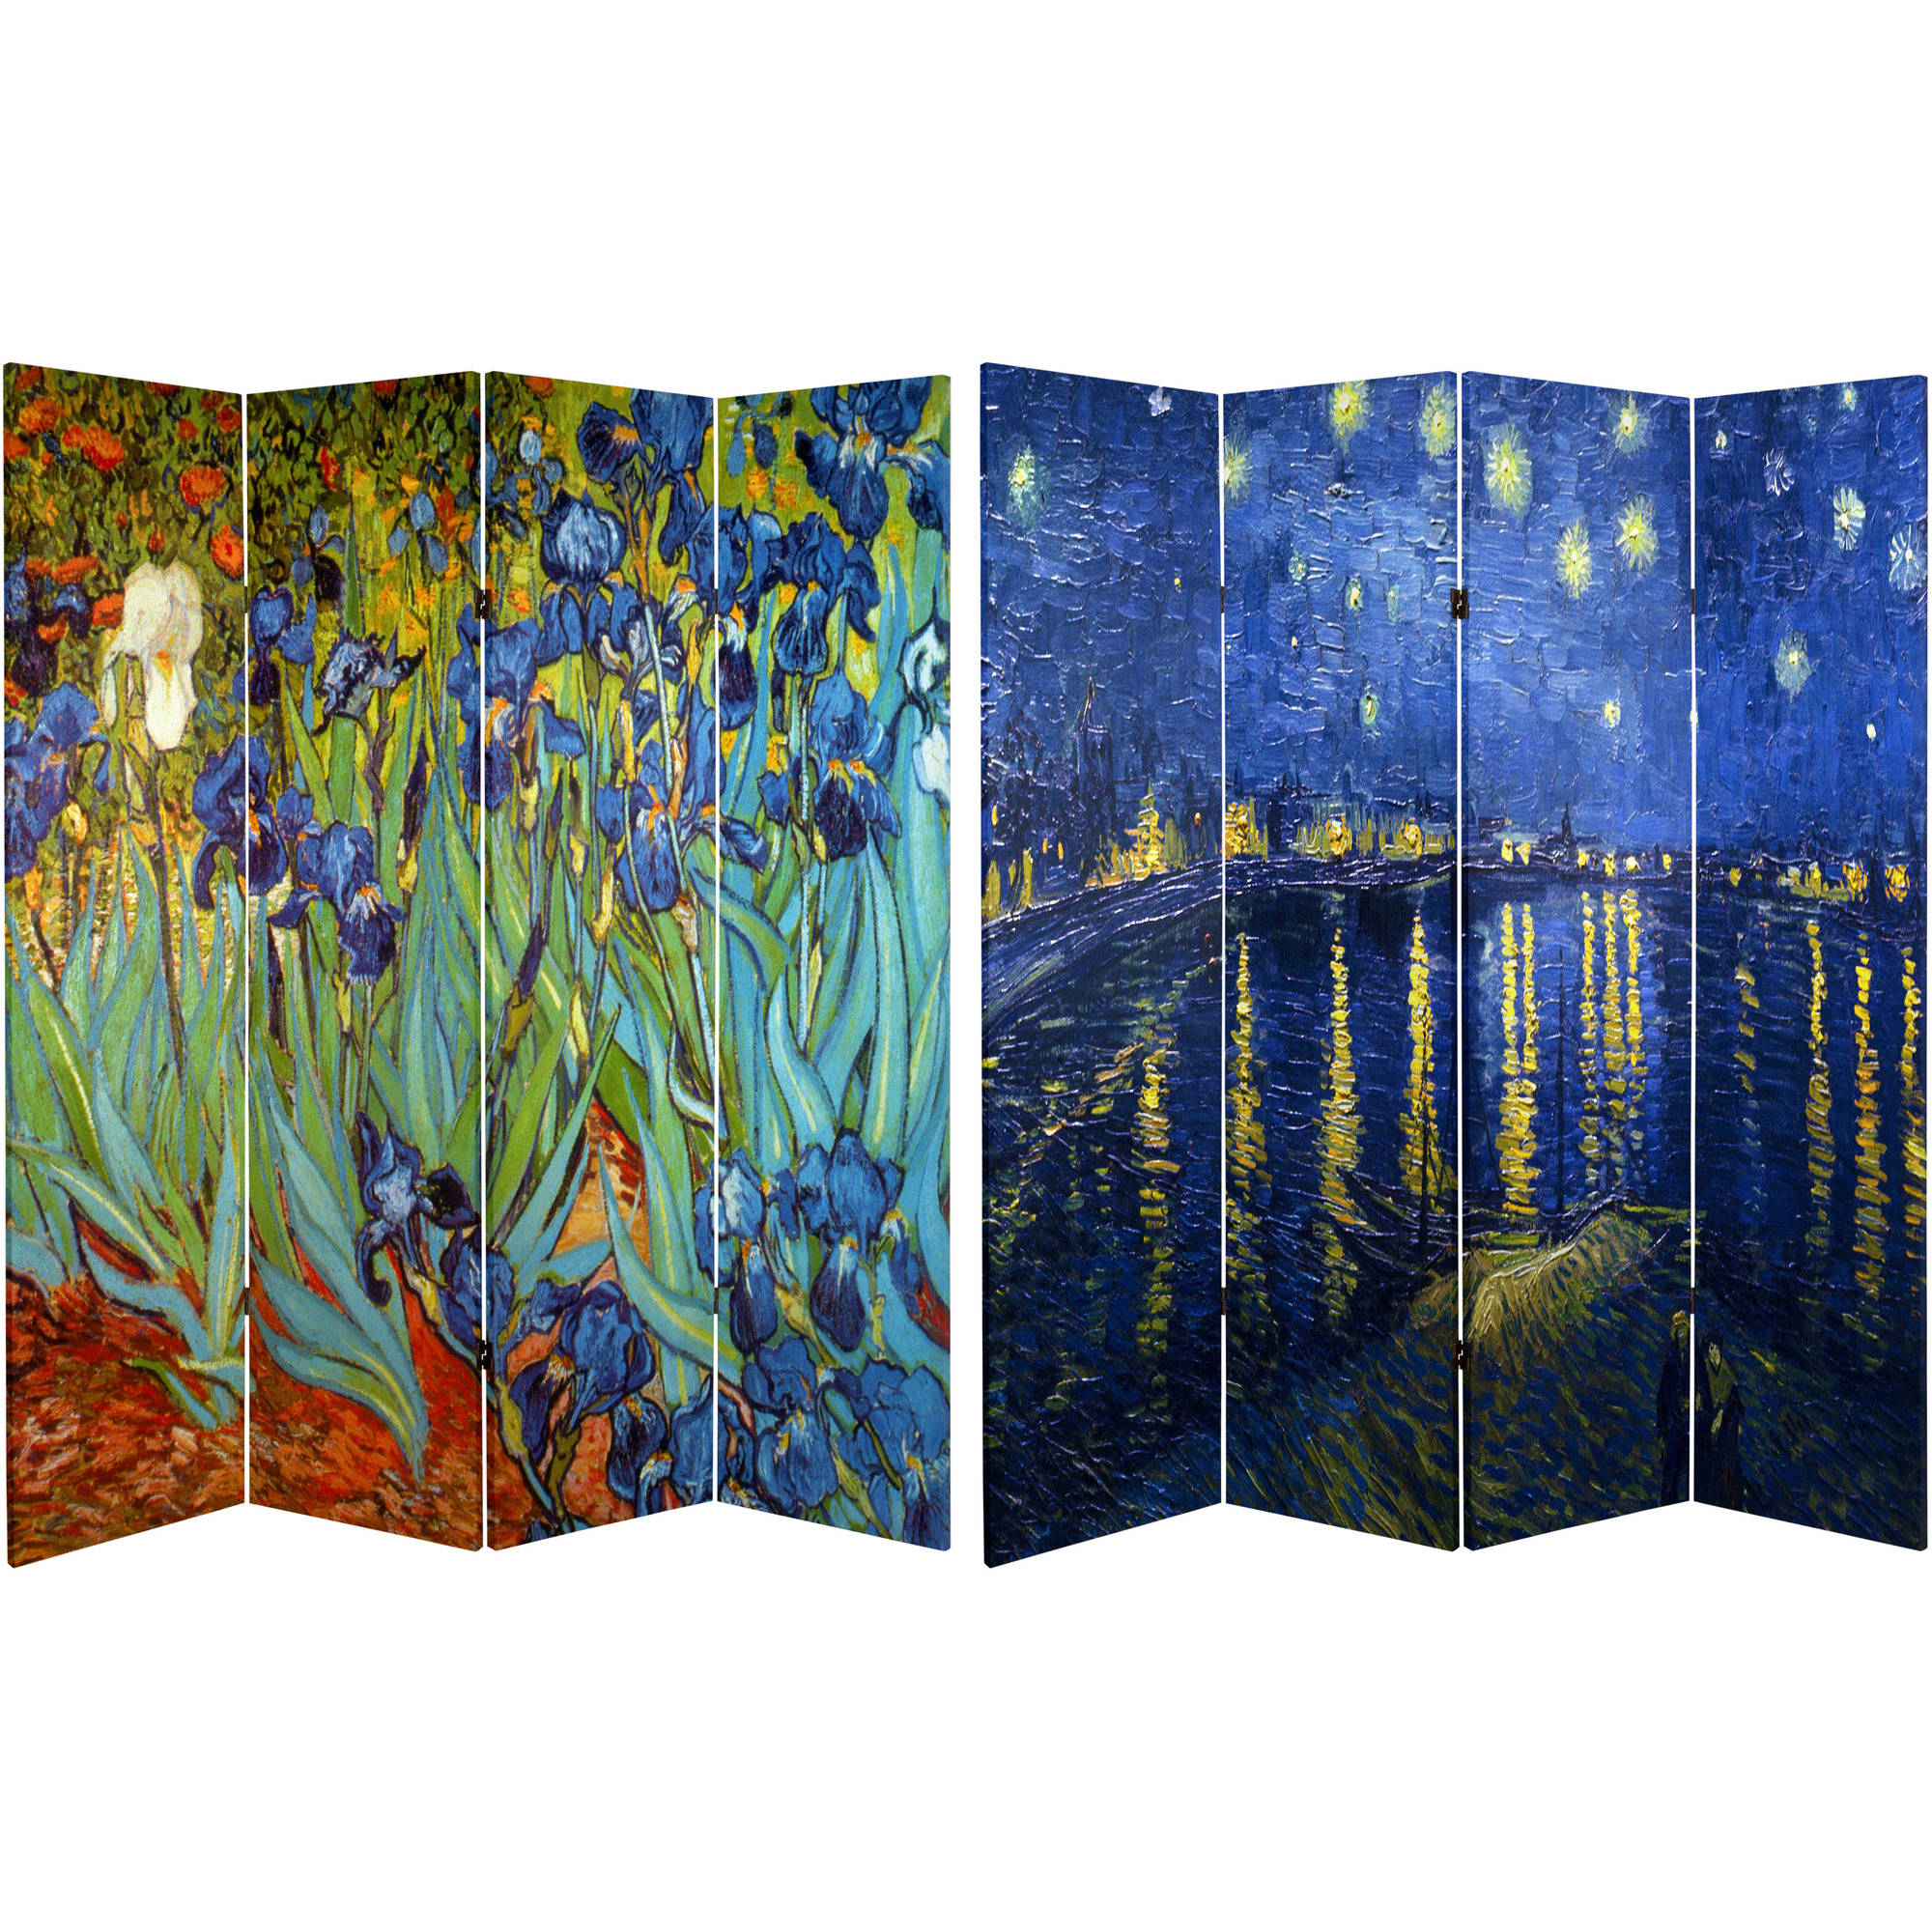 Oriental Furniture 6 Ft Tall Double Sided Works Of Van Gogh Canvas Room Divider, 4 Panel – Walmart Intended For Most Recently Released Blended Fabric Van Gogh Terrace Wall Hangings (View 17 of 20)